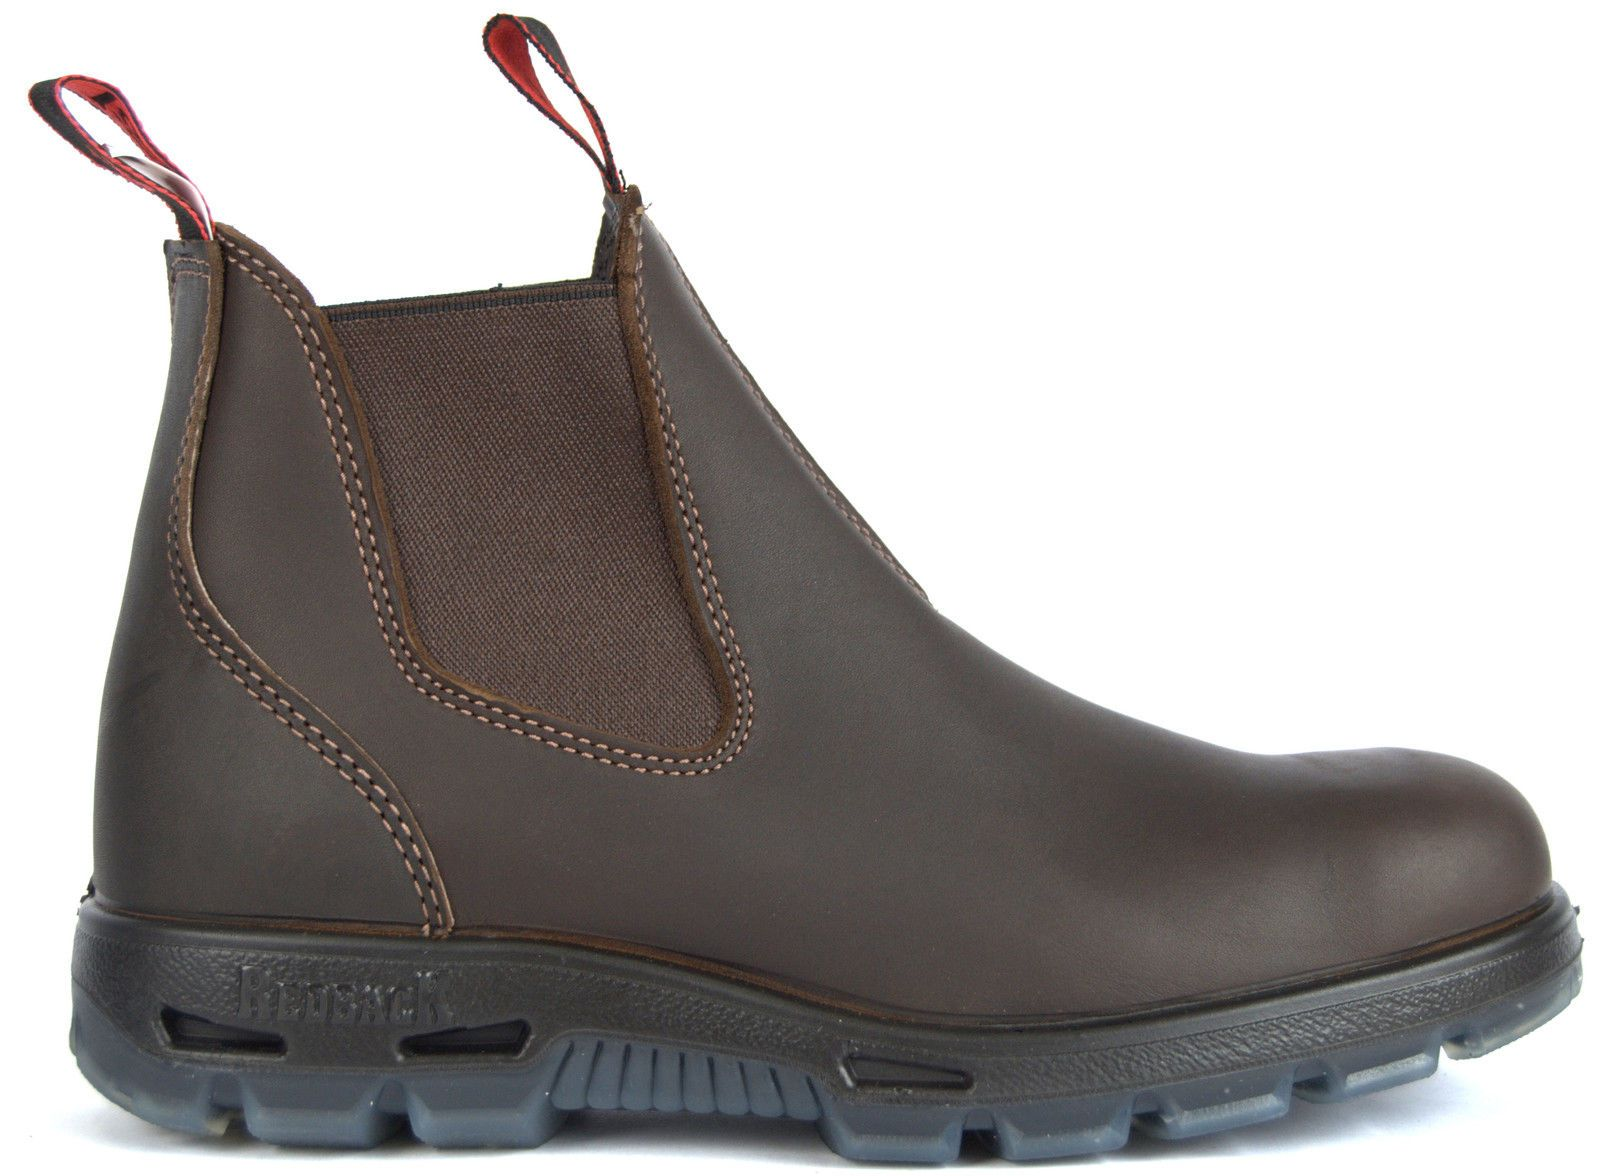 Details About Original Redback Unpu Mens Non Steel Toe Work Boots Puma Brown Water Resistant Steel Toe Work Boots Redback Boots Slip On Work Boots